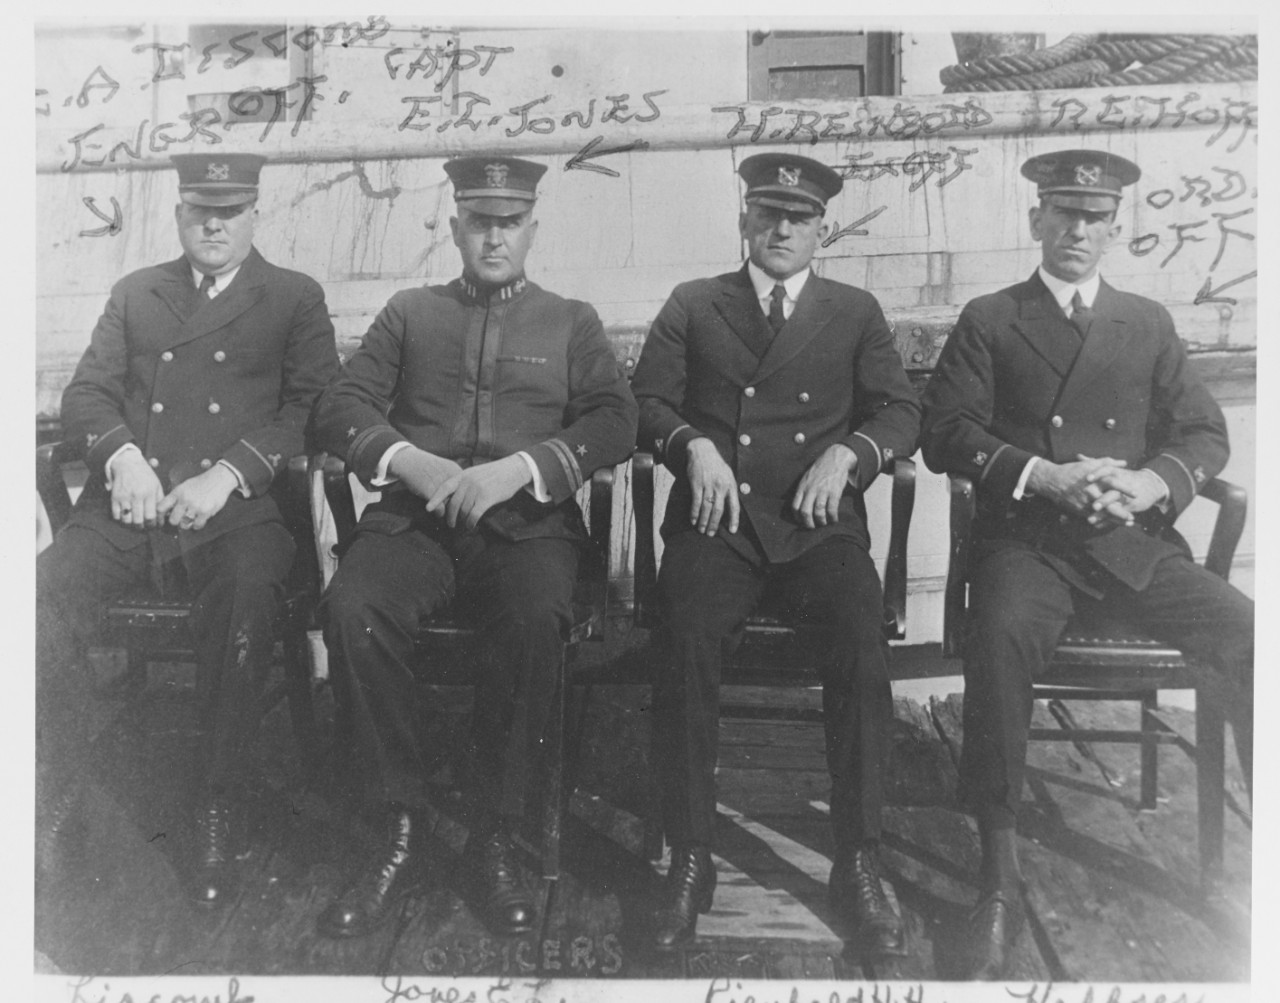 black and white photo of 4 men in naval officer uniforms identified with handwriting